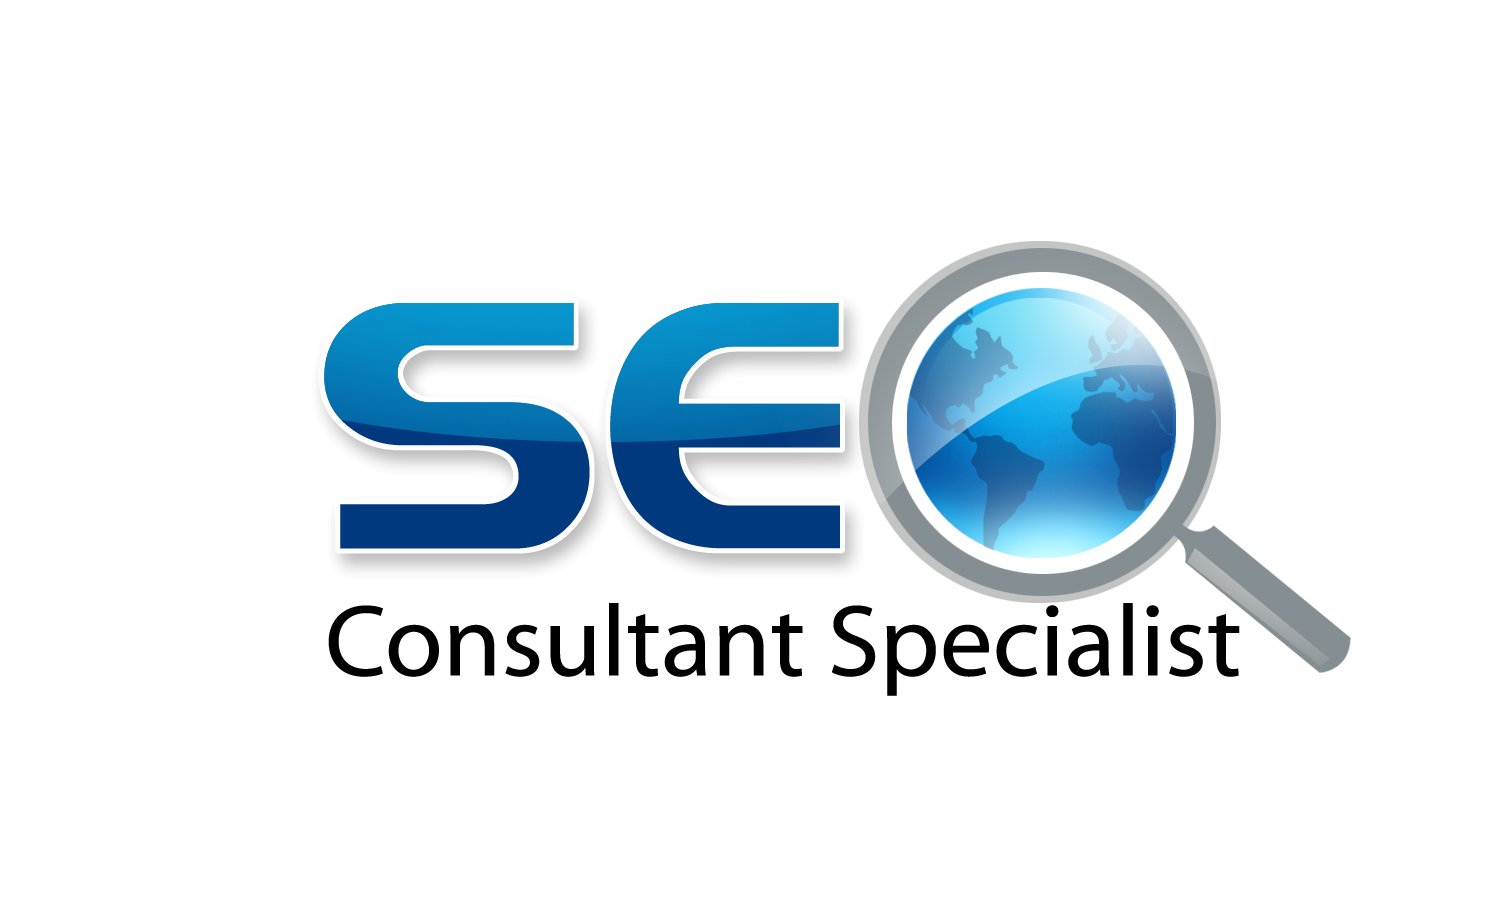 SEO Consultant Specialist a TopRanked SEO Specialist on